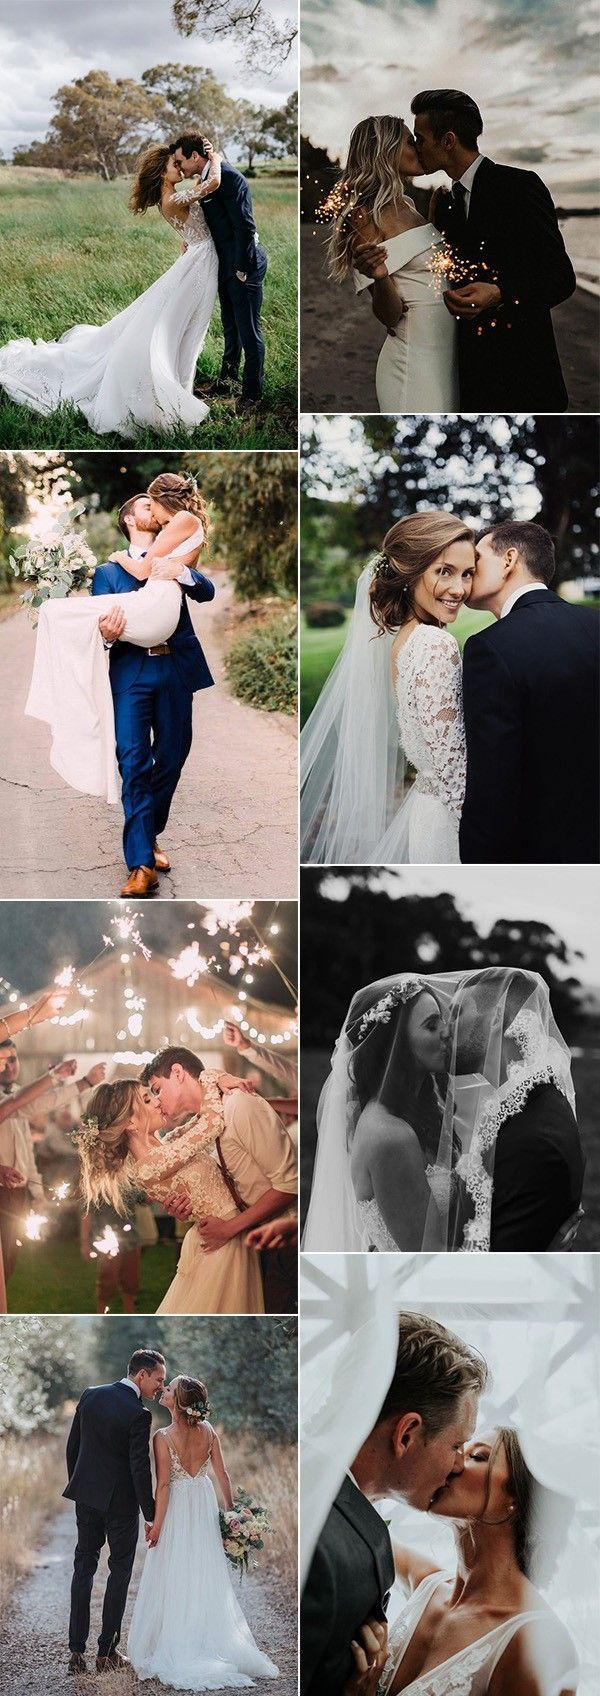 20 Must Have Wedding Photo Ideas with Your Groom #groomdress